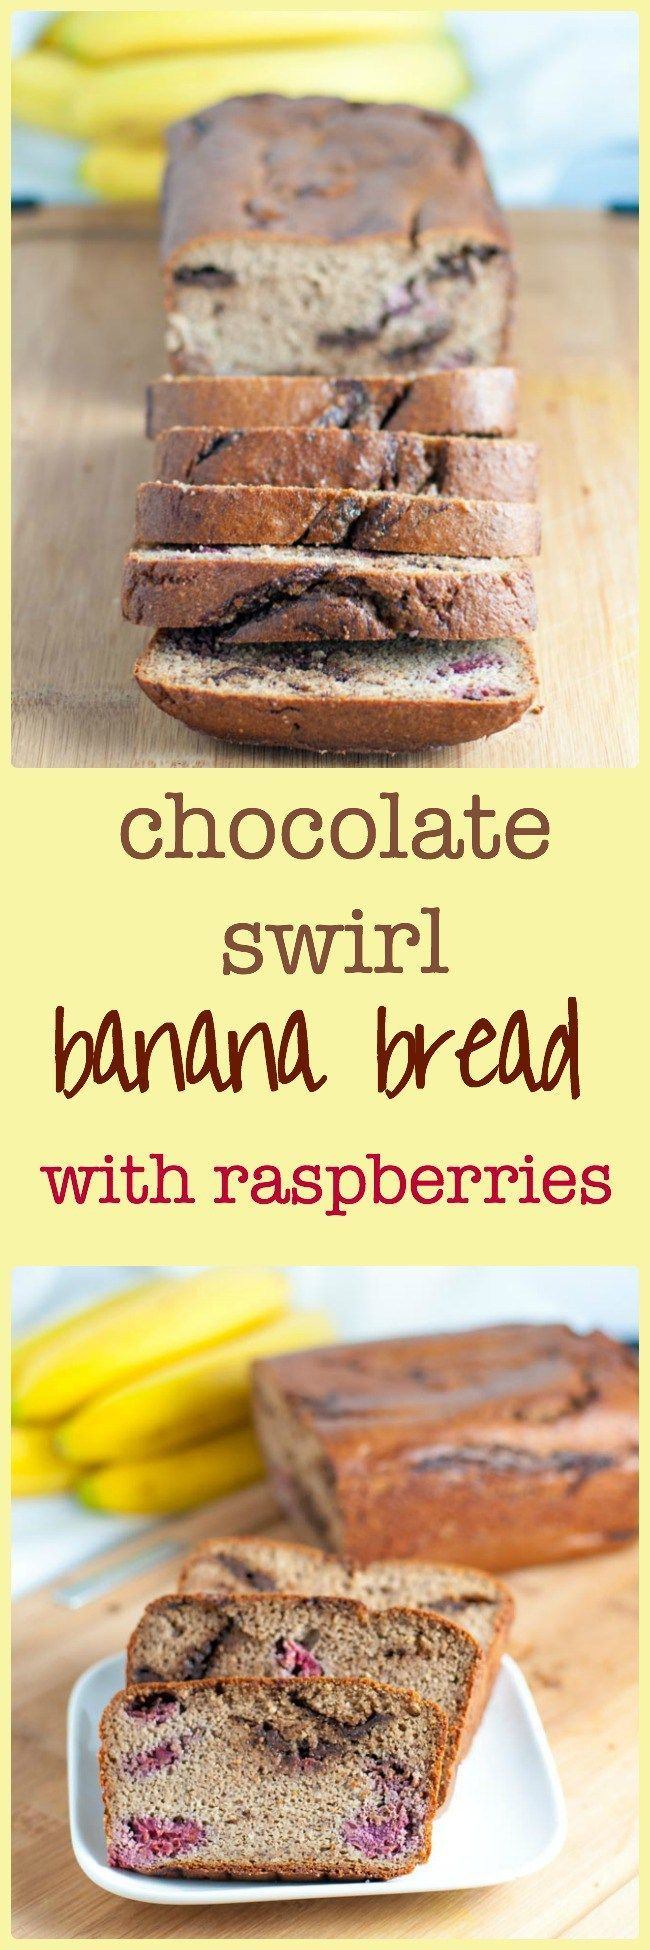 Chocolate Swirl Banan Bread with Raspberries. Is there anything more comforting than a warm slice of banana bread? This one is gluten-free, paleo and has no added sweetener. Swirled with dark chocolate and studded with raspberries, it's comfort food at its finest!